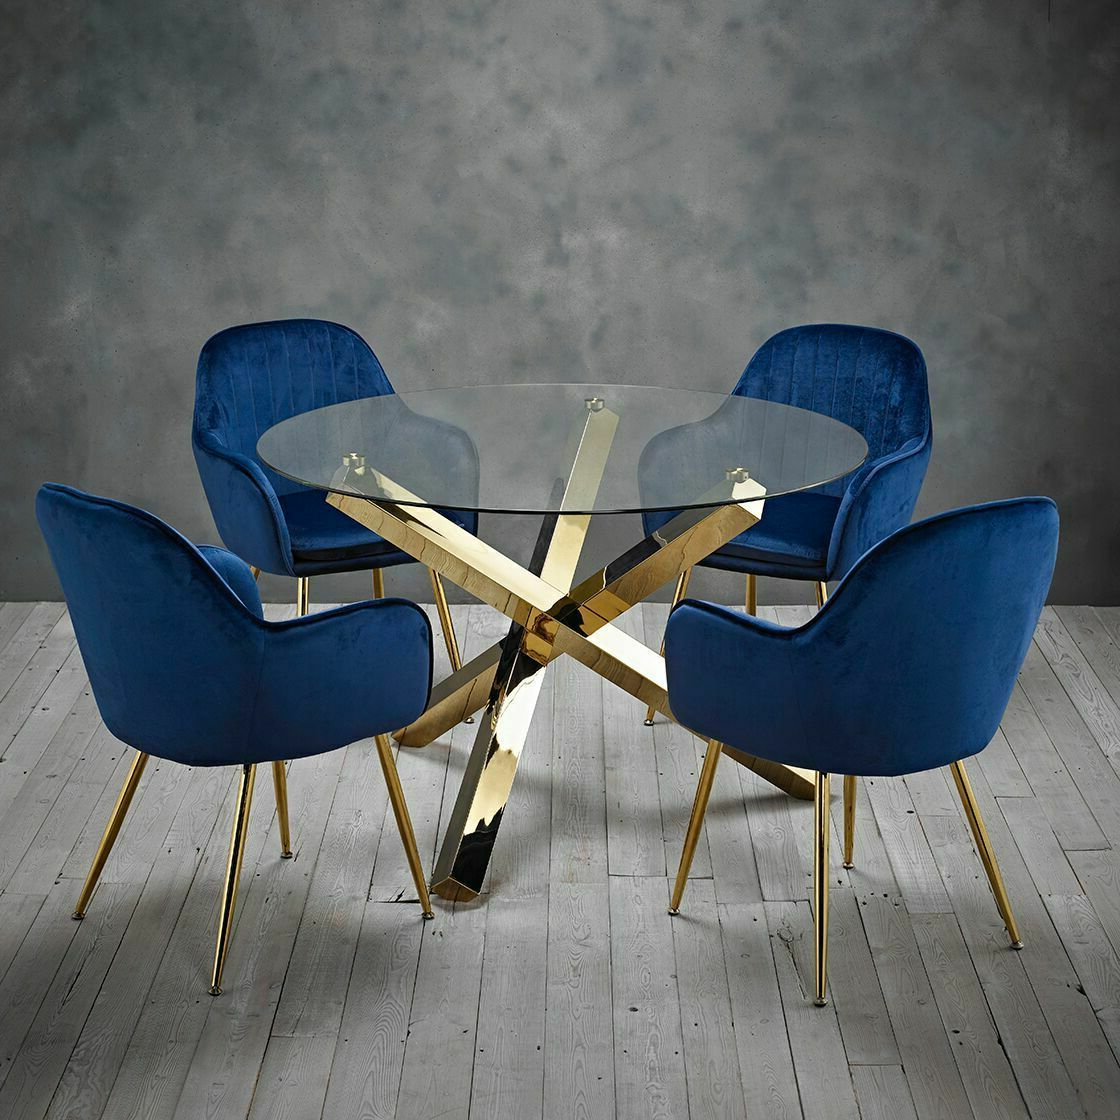 2017 Modern Polished Gold Round Clear Glass Dining Table Throughout Modern Gold Dining Tables With Clear Glass (View 2 of 30)